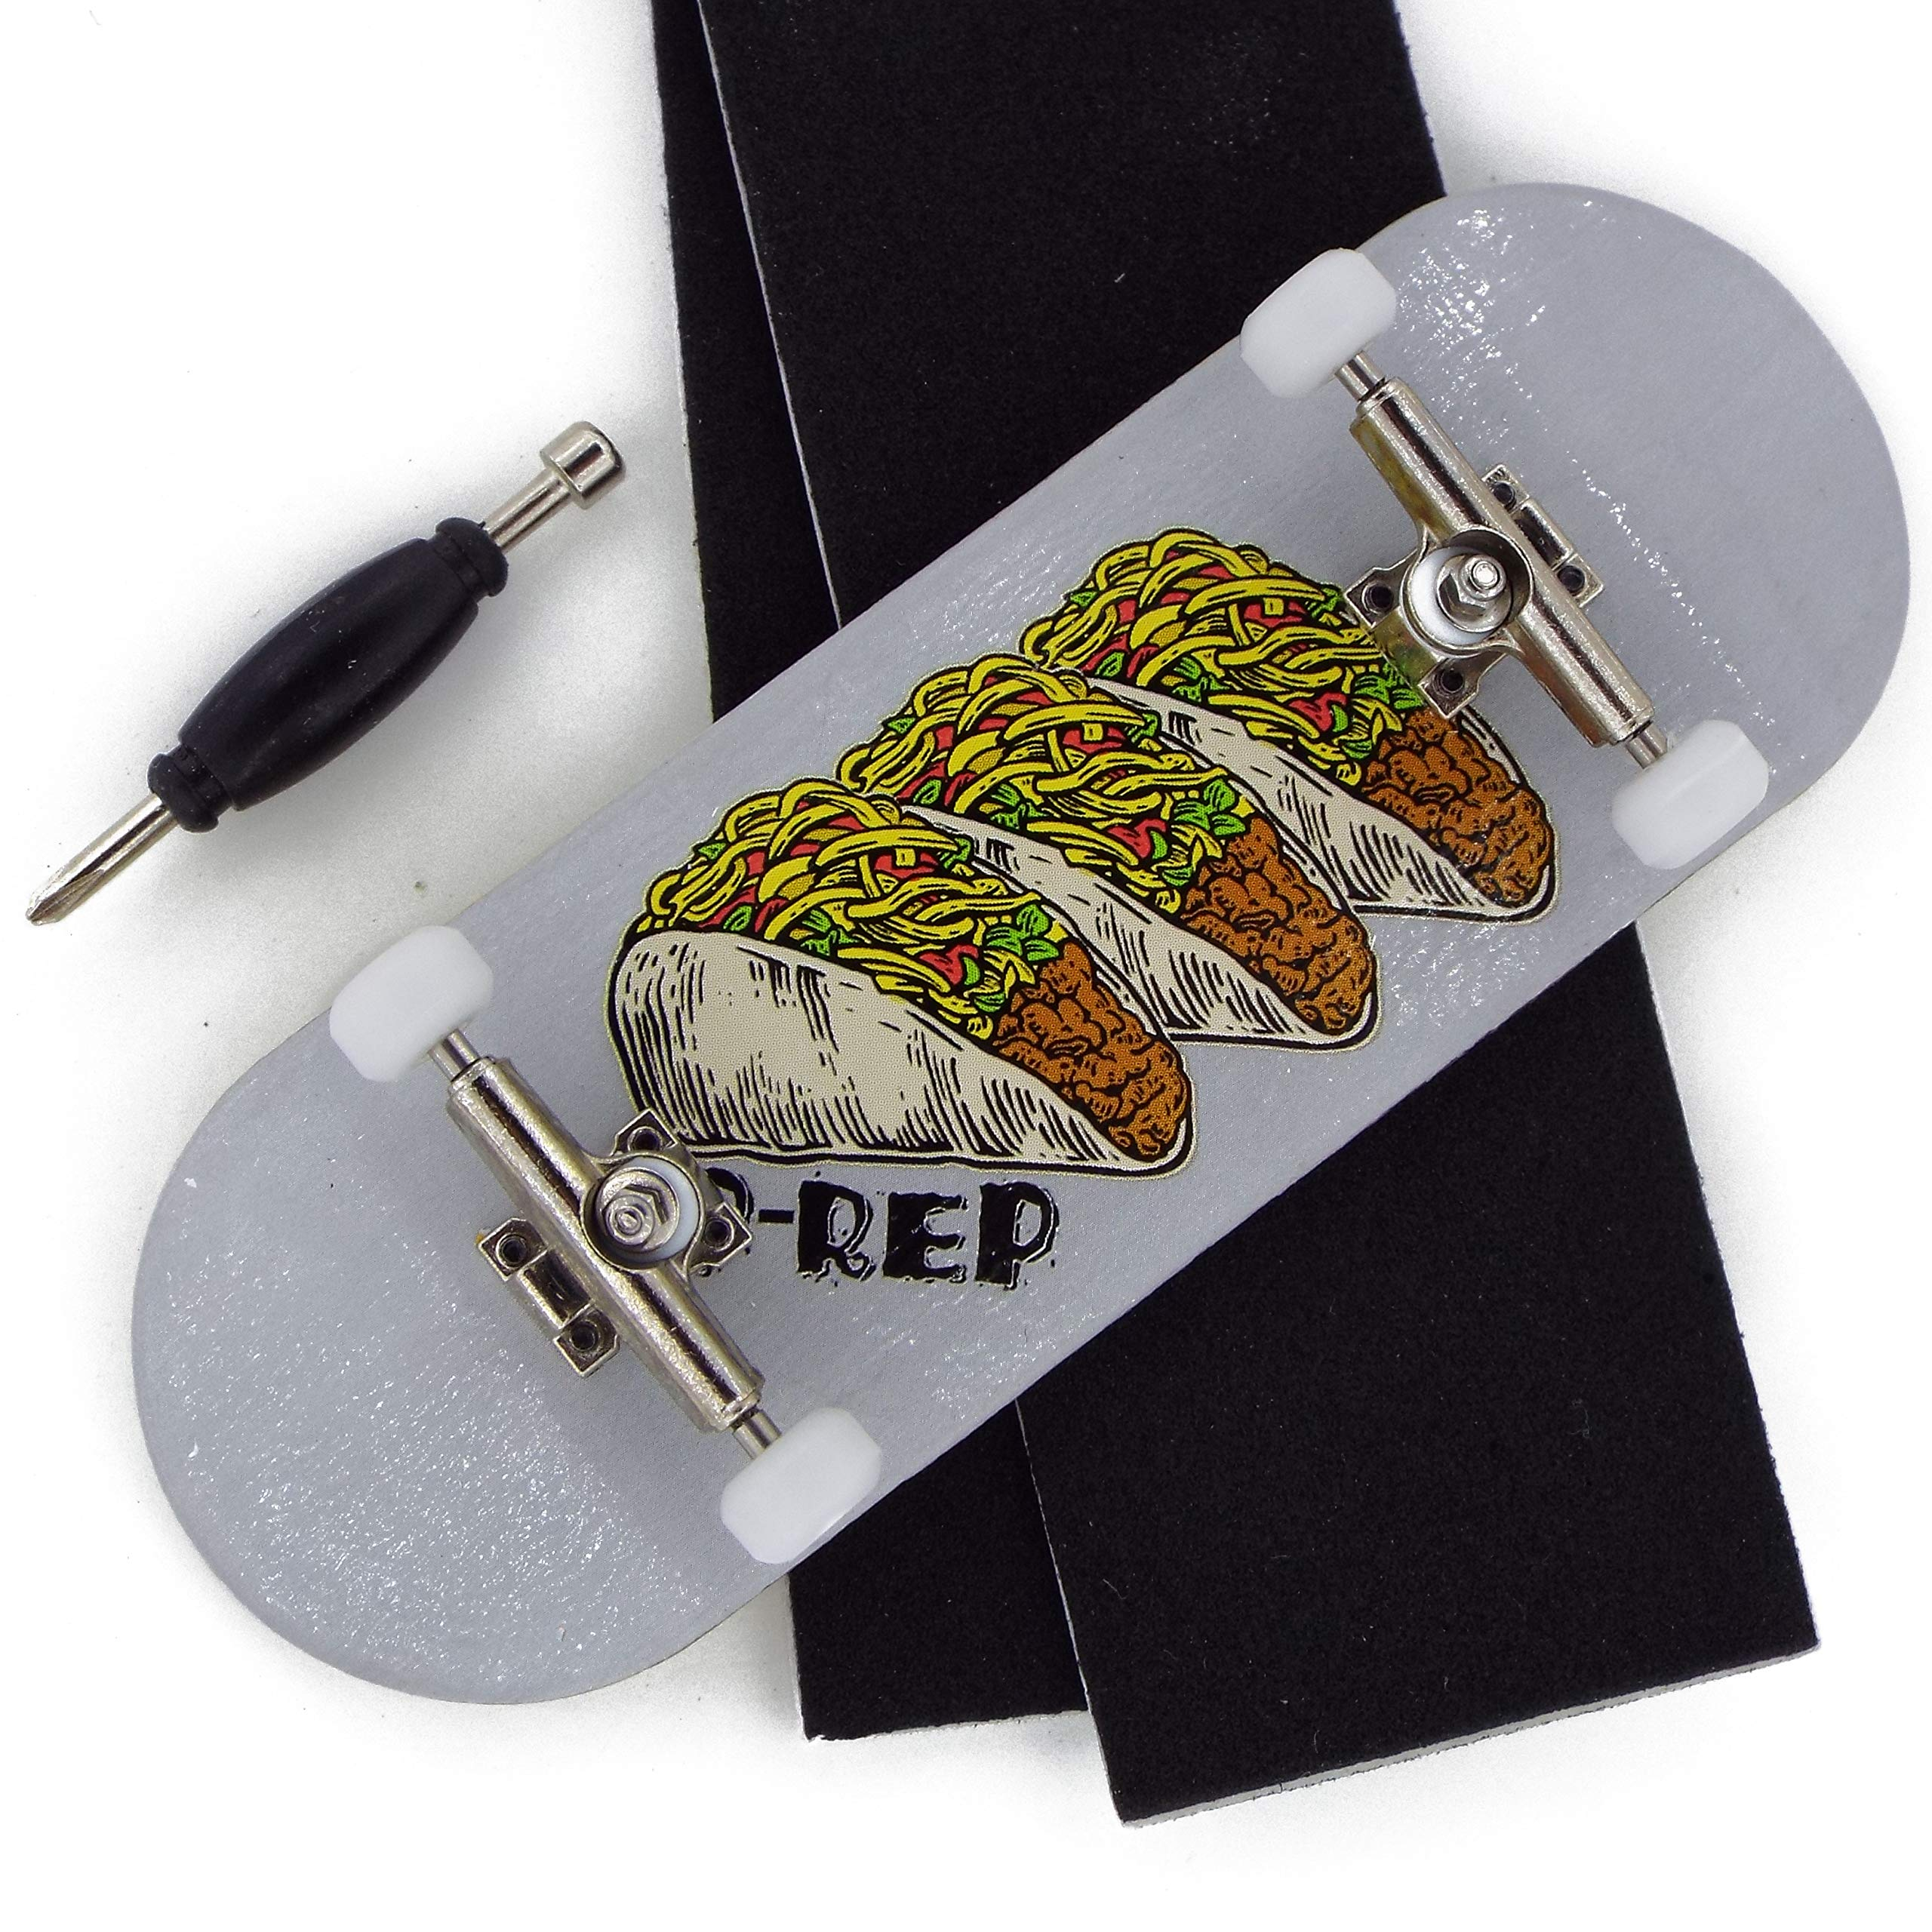 P-REP Tuned Complete Wooden Fingerboard 34mm x 100mm - Tres Tacos by P-REP